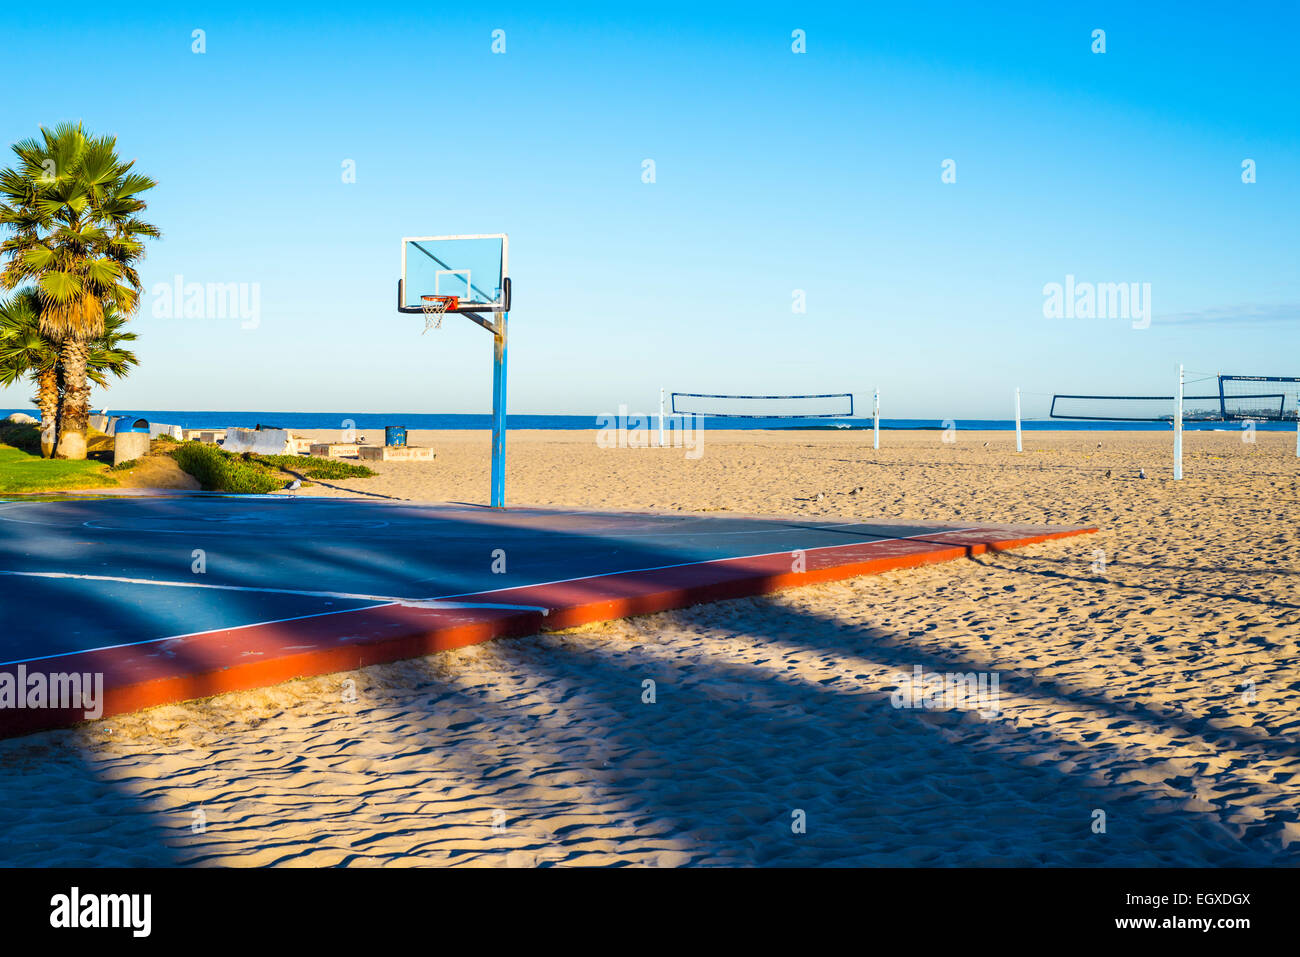 South Mission Beach Basketball Court